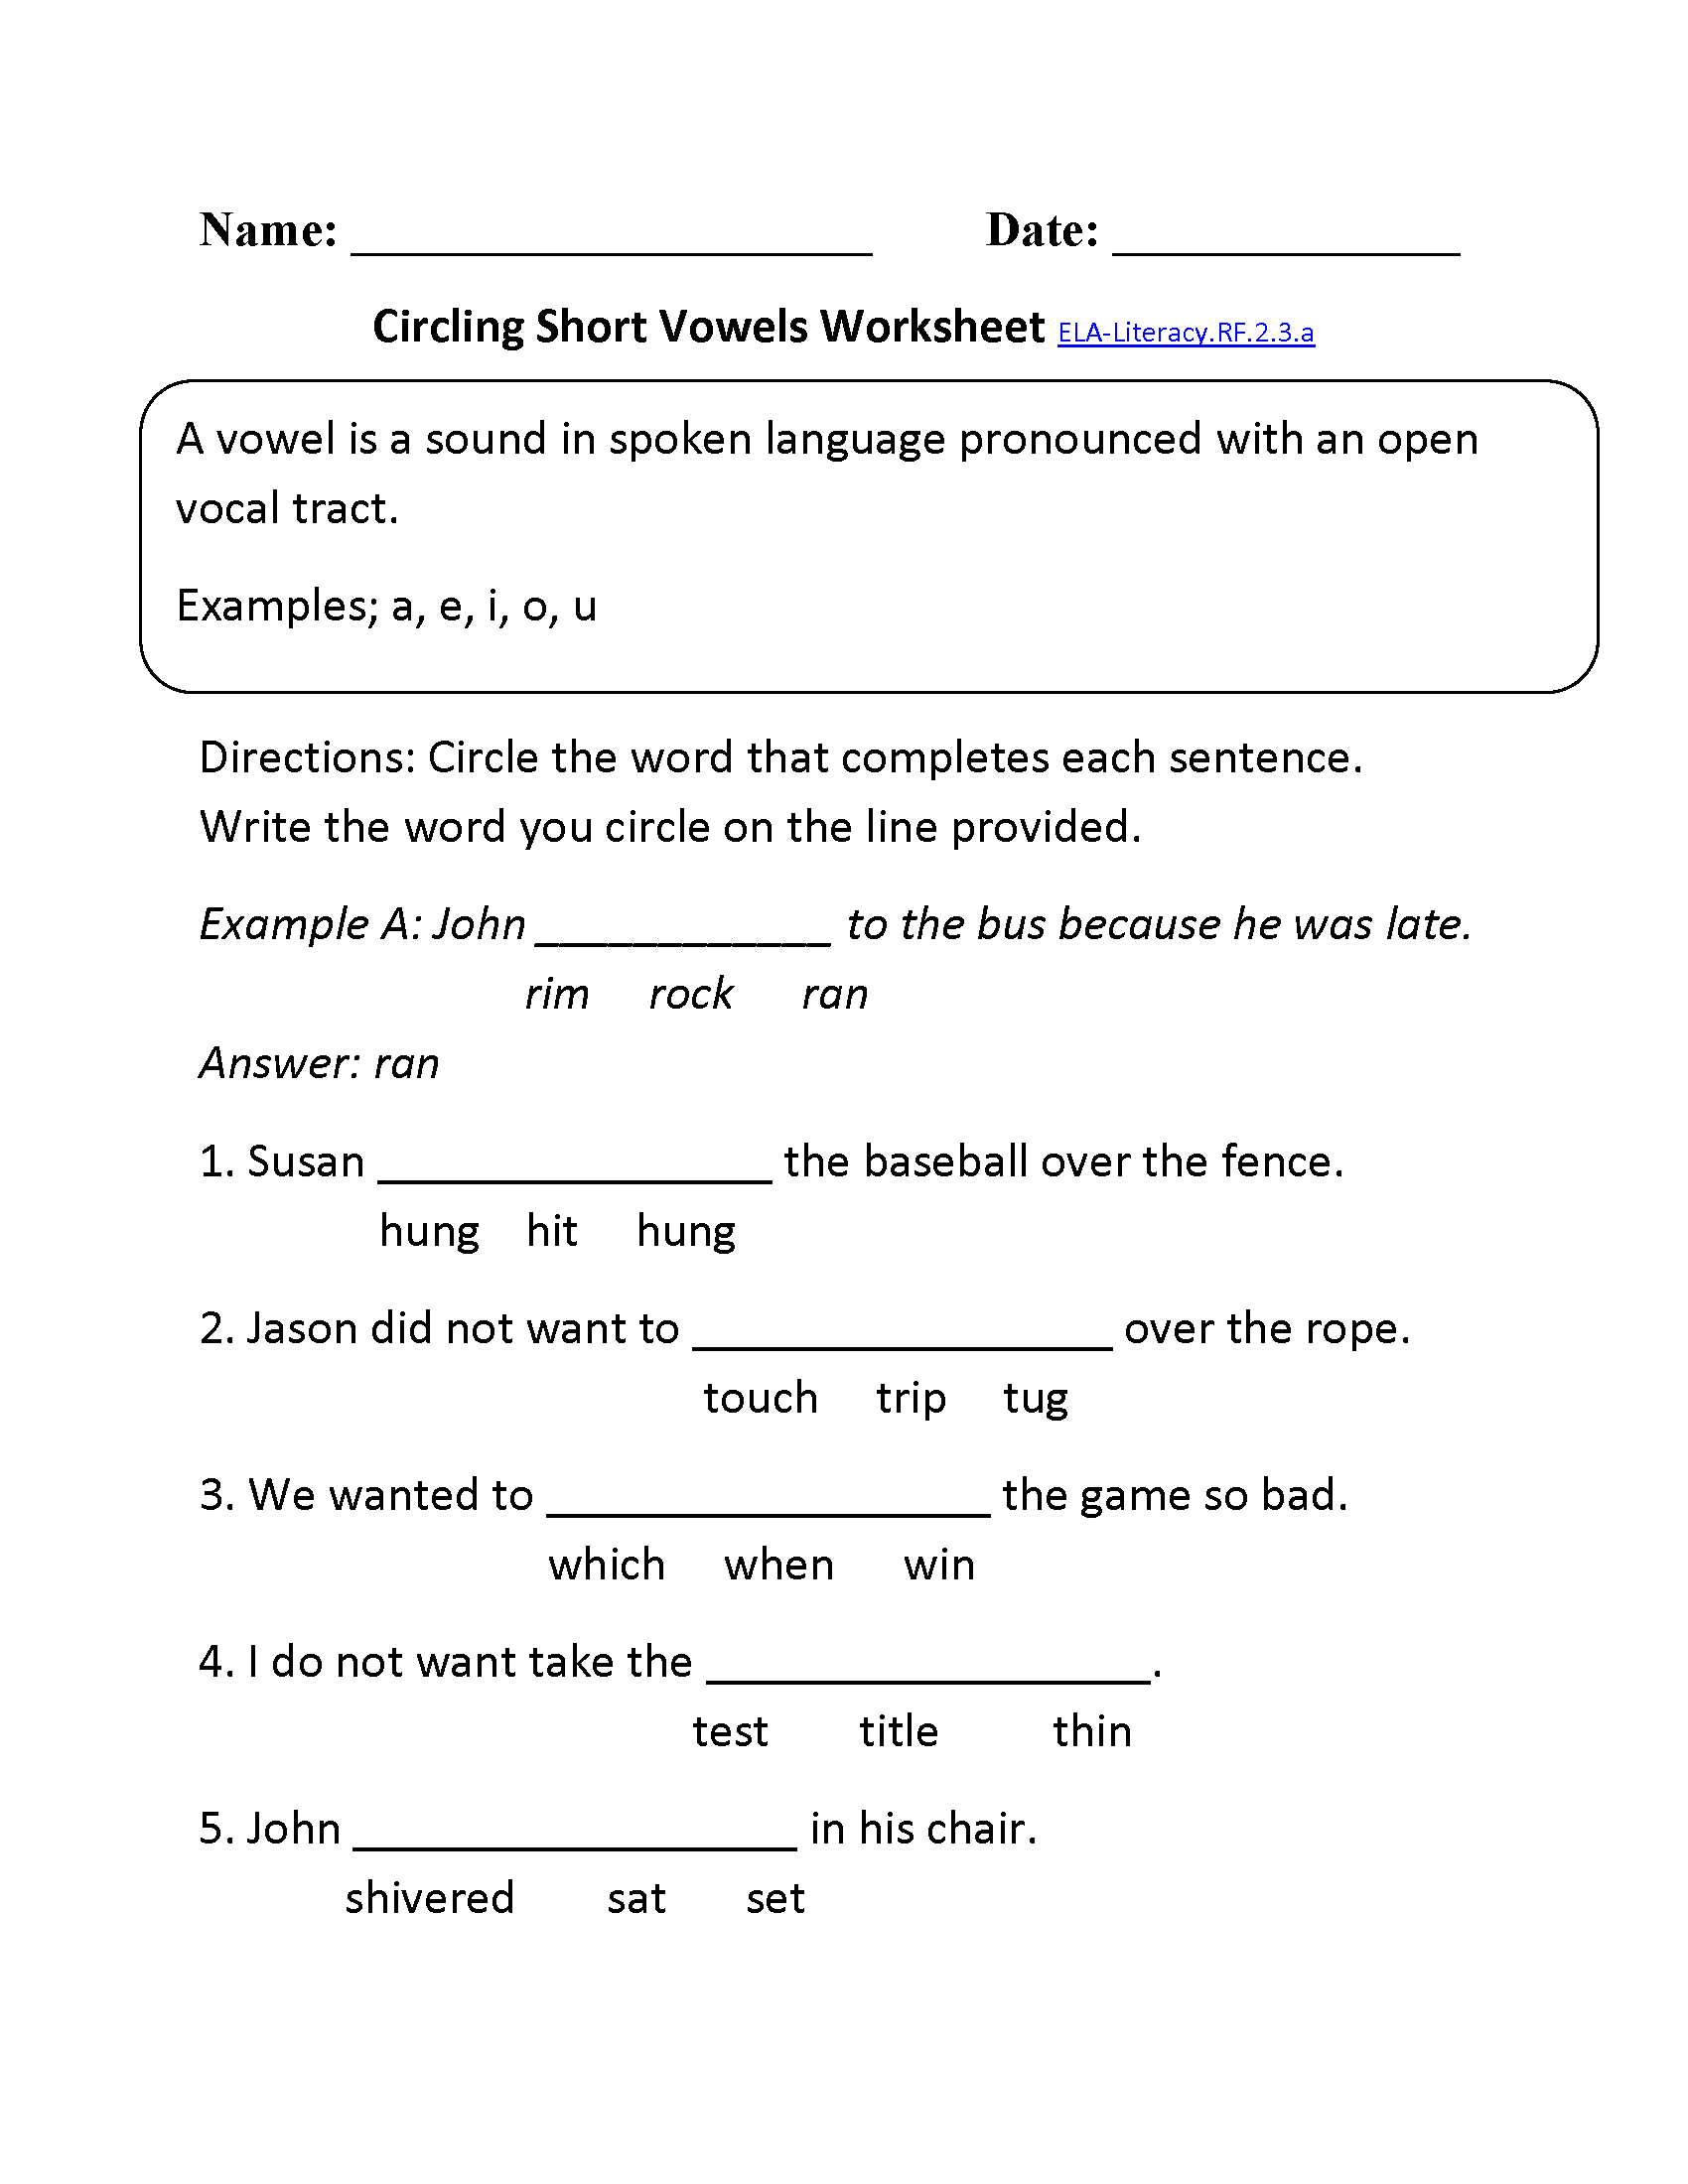 Worksheet Common Core Grammar Worksheets 2nd grade common core ela worksheets delwfg com reading foundational skills worksheets